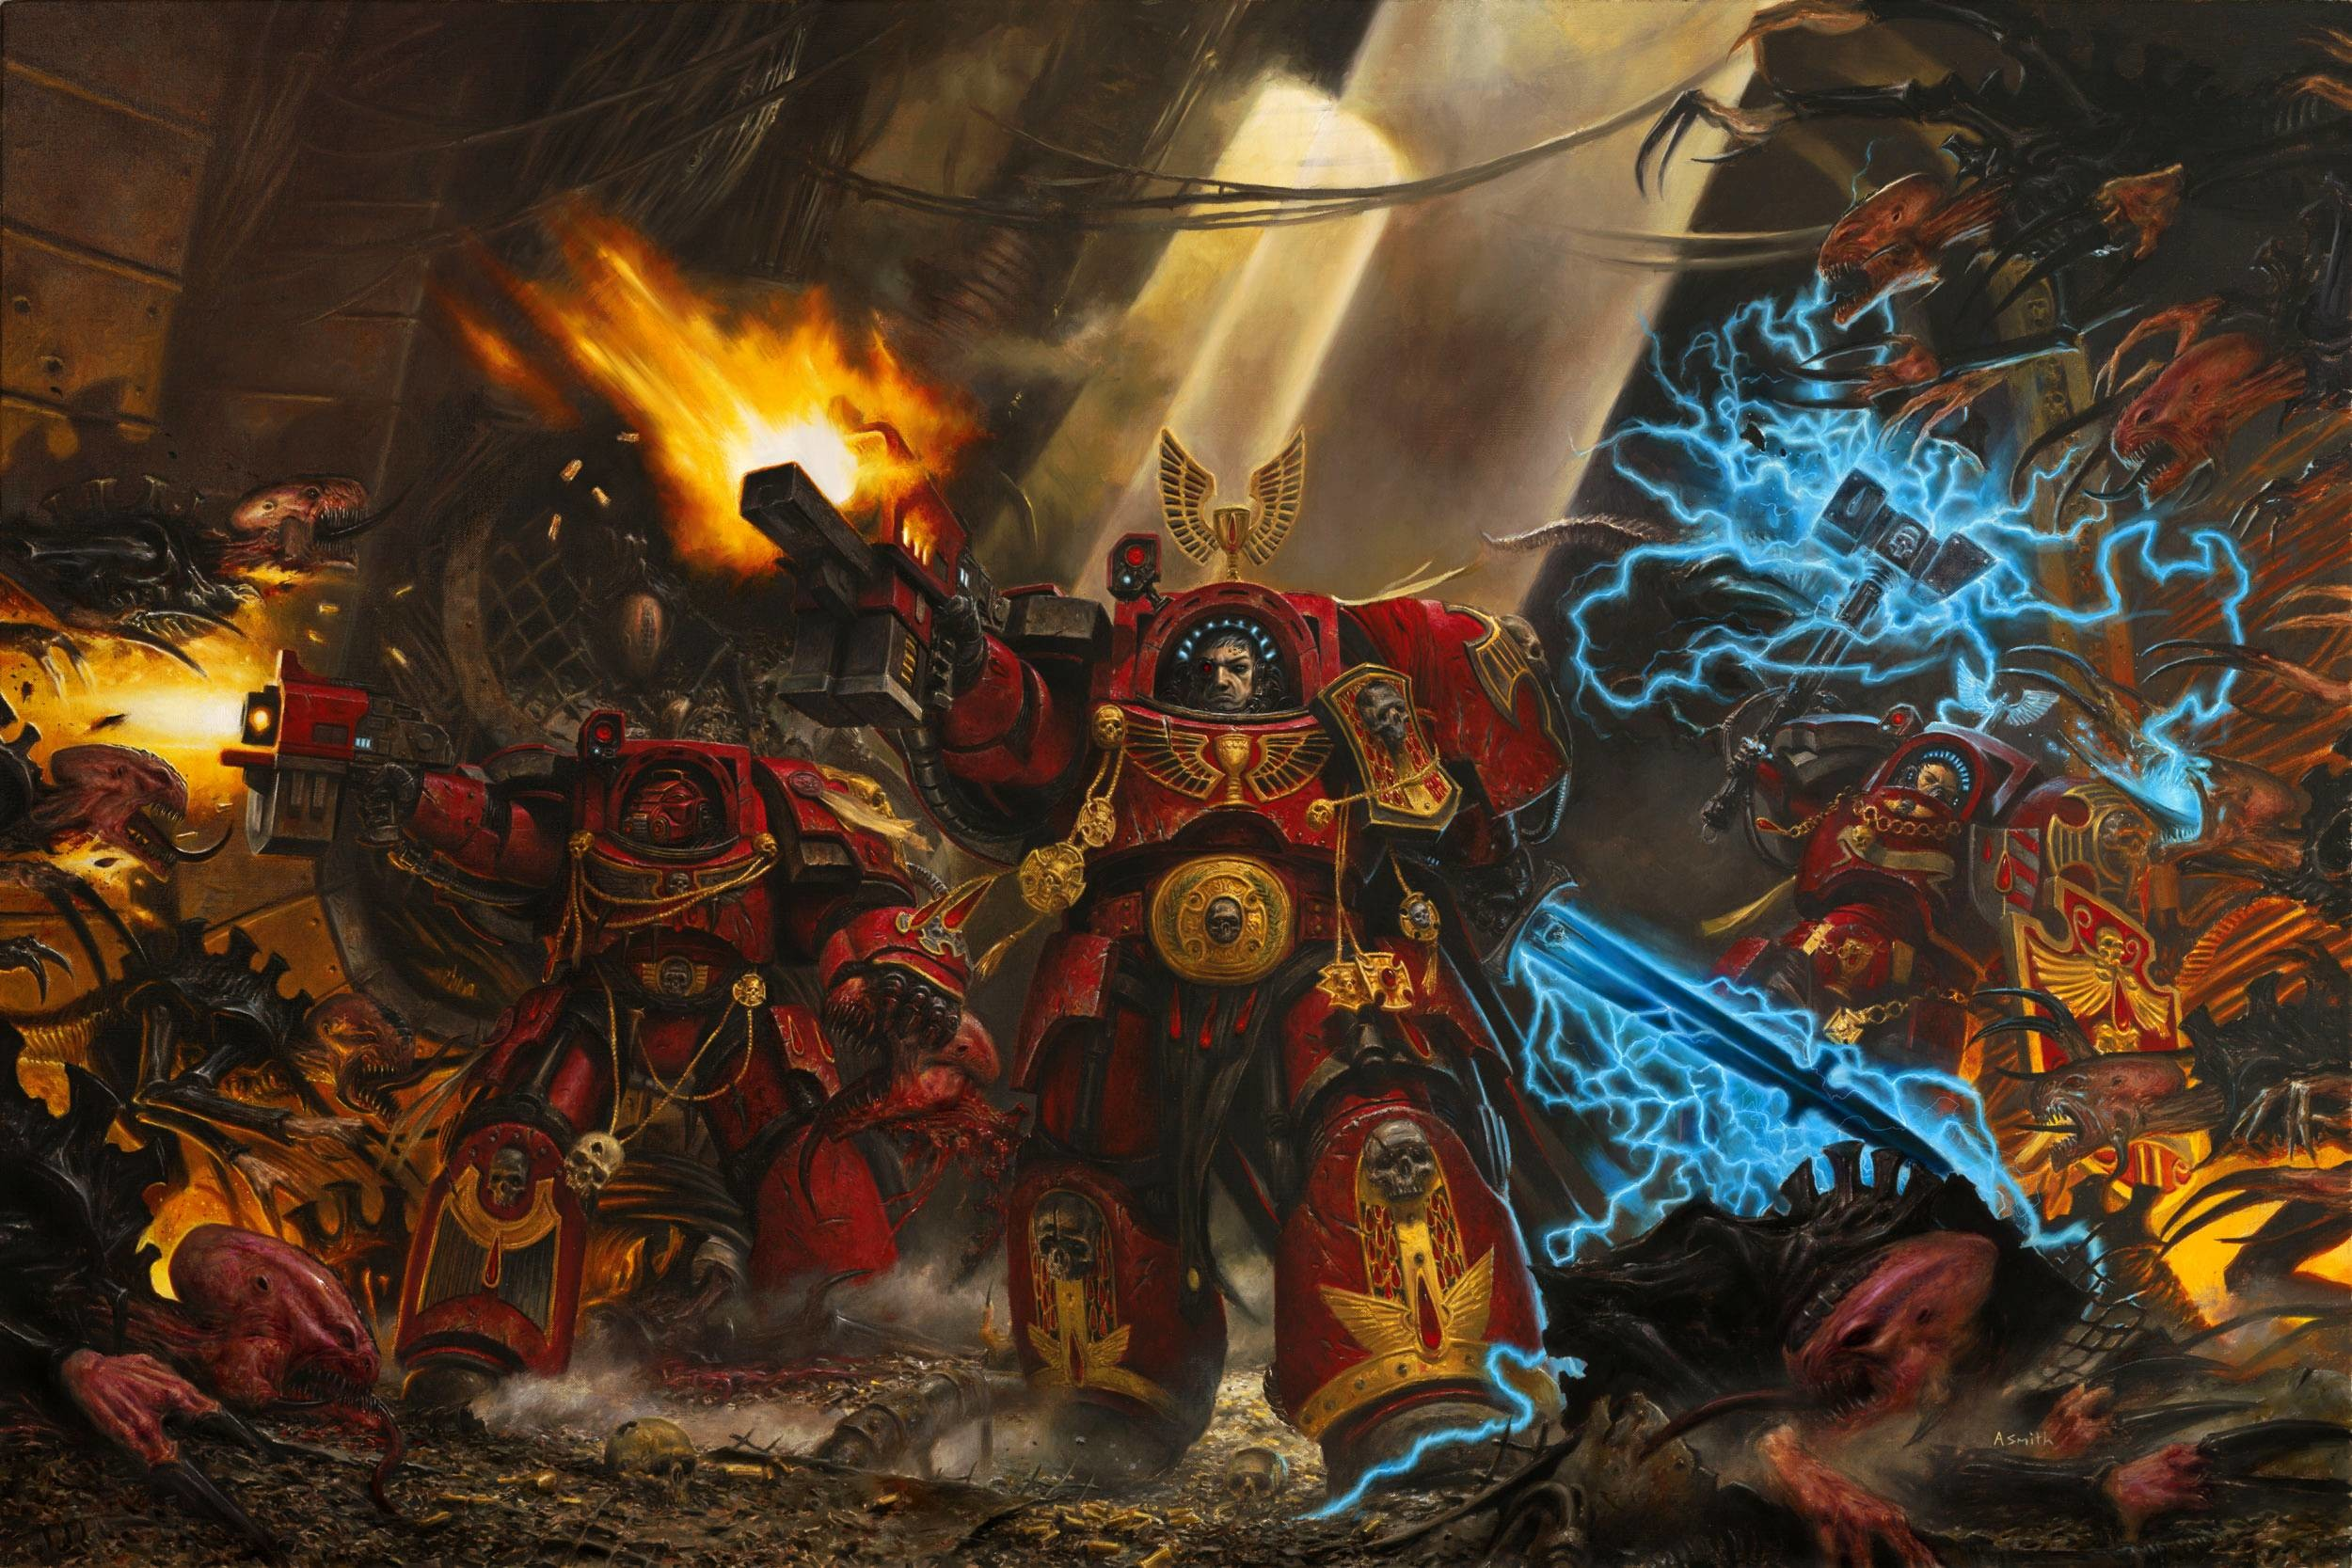 Warhammer Computer Wallpapers, Desktop Backgrounds Id: 88068